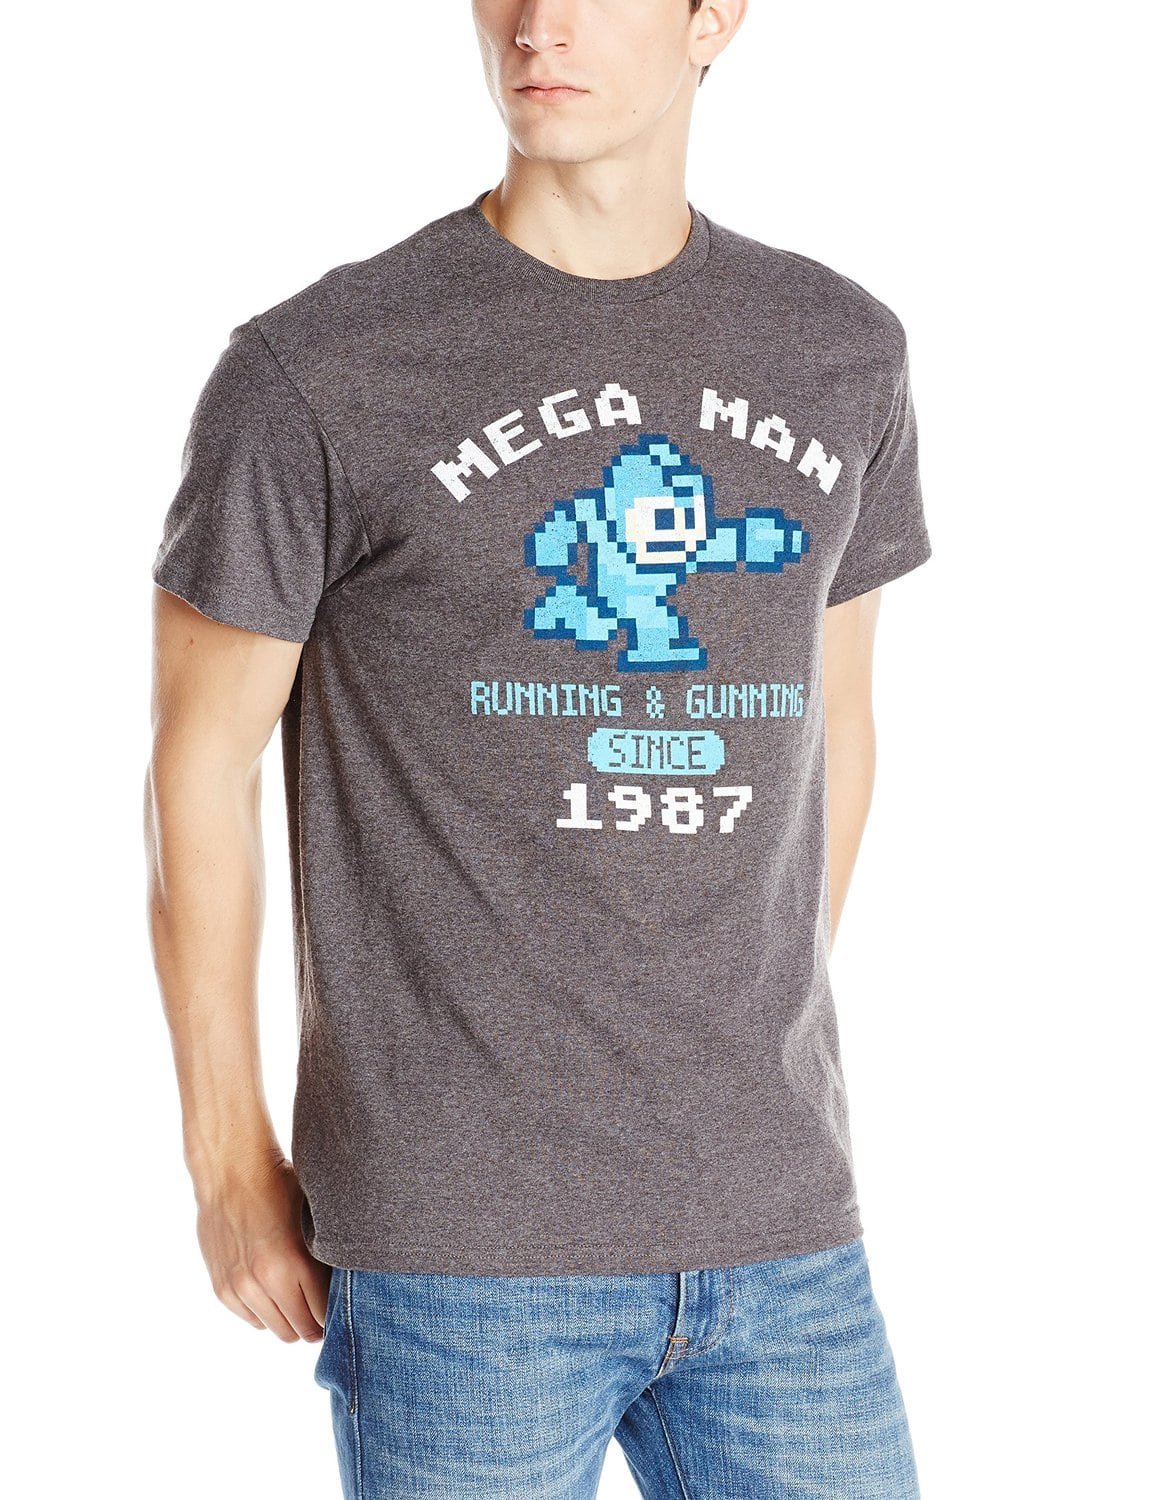 Men's Mega Man Vintage T-Shirt (Charcoal Heather)  $7.50